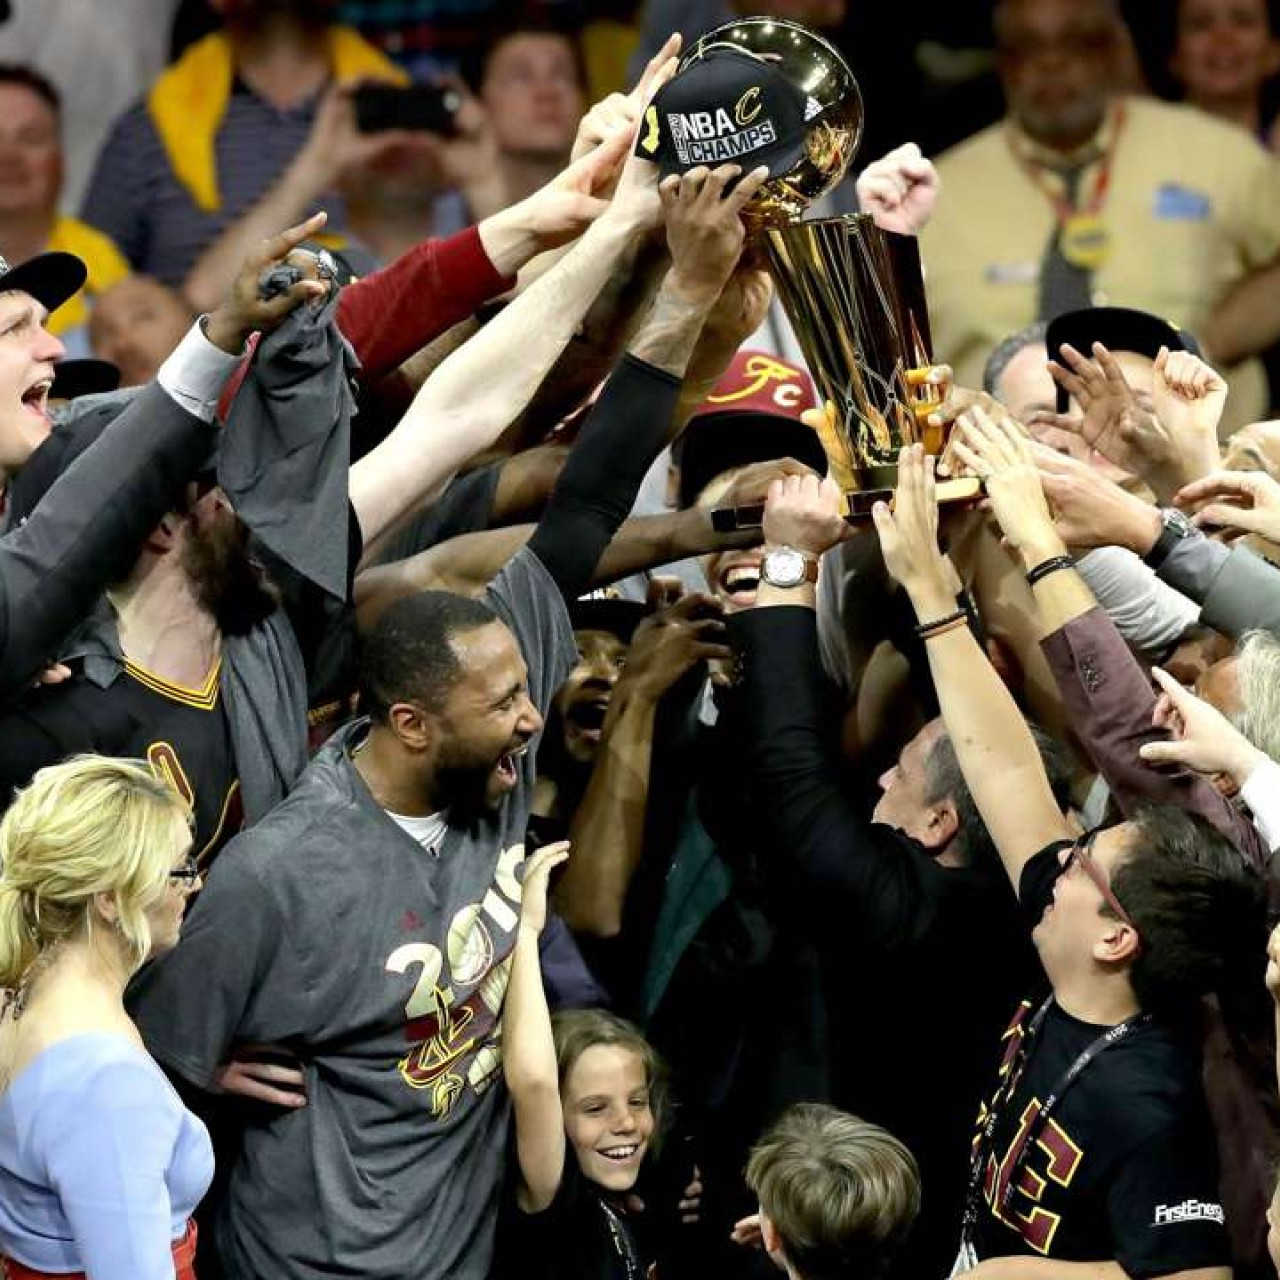 Cleveland Cavaliers edge Golden State Warriors to complete